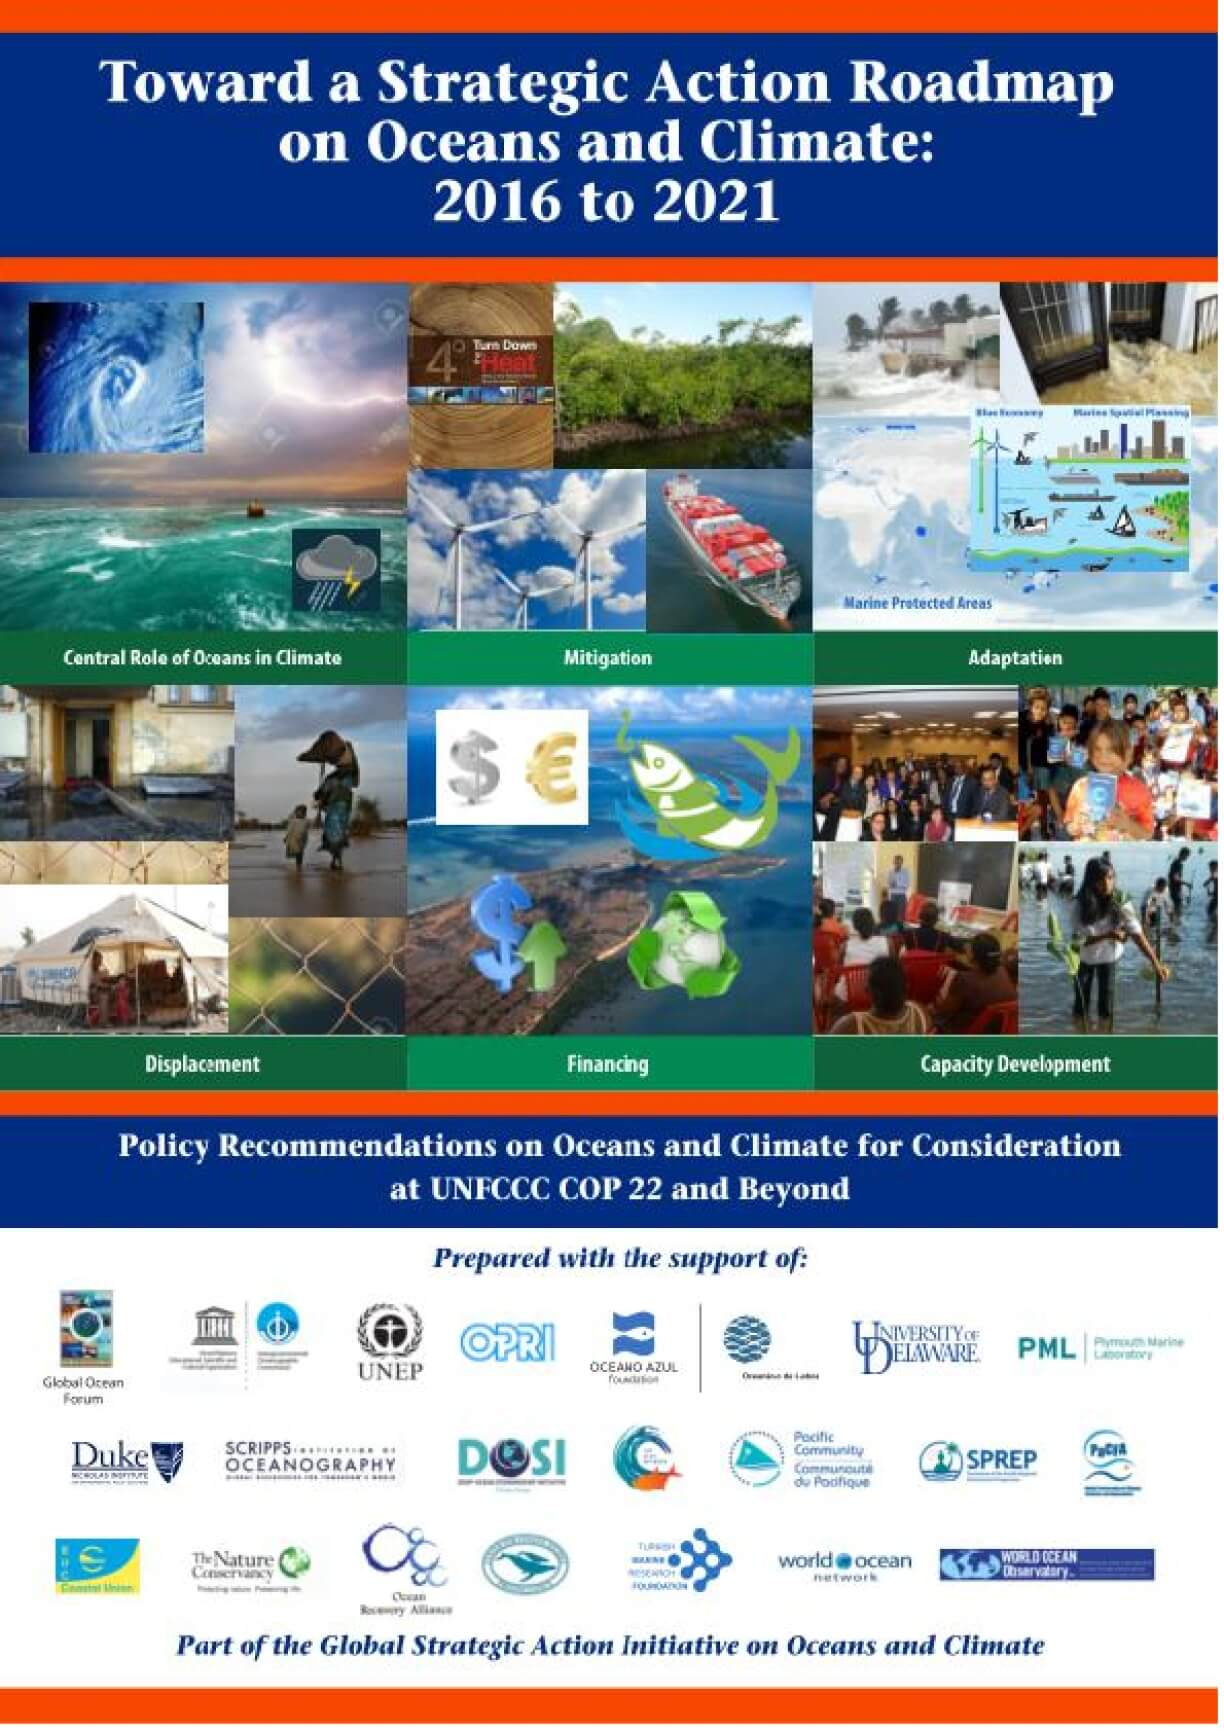 Toward a Strategic Action Roadmap on Oceans and Climate: 2016 to 2021